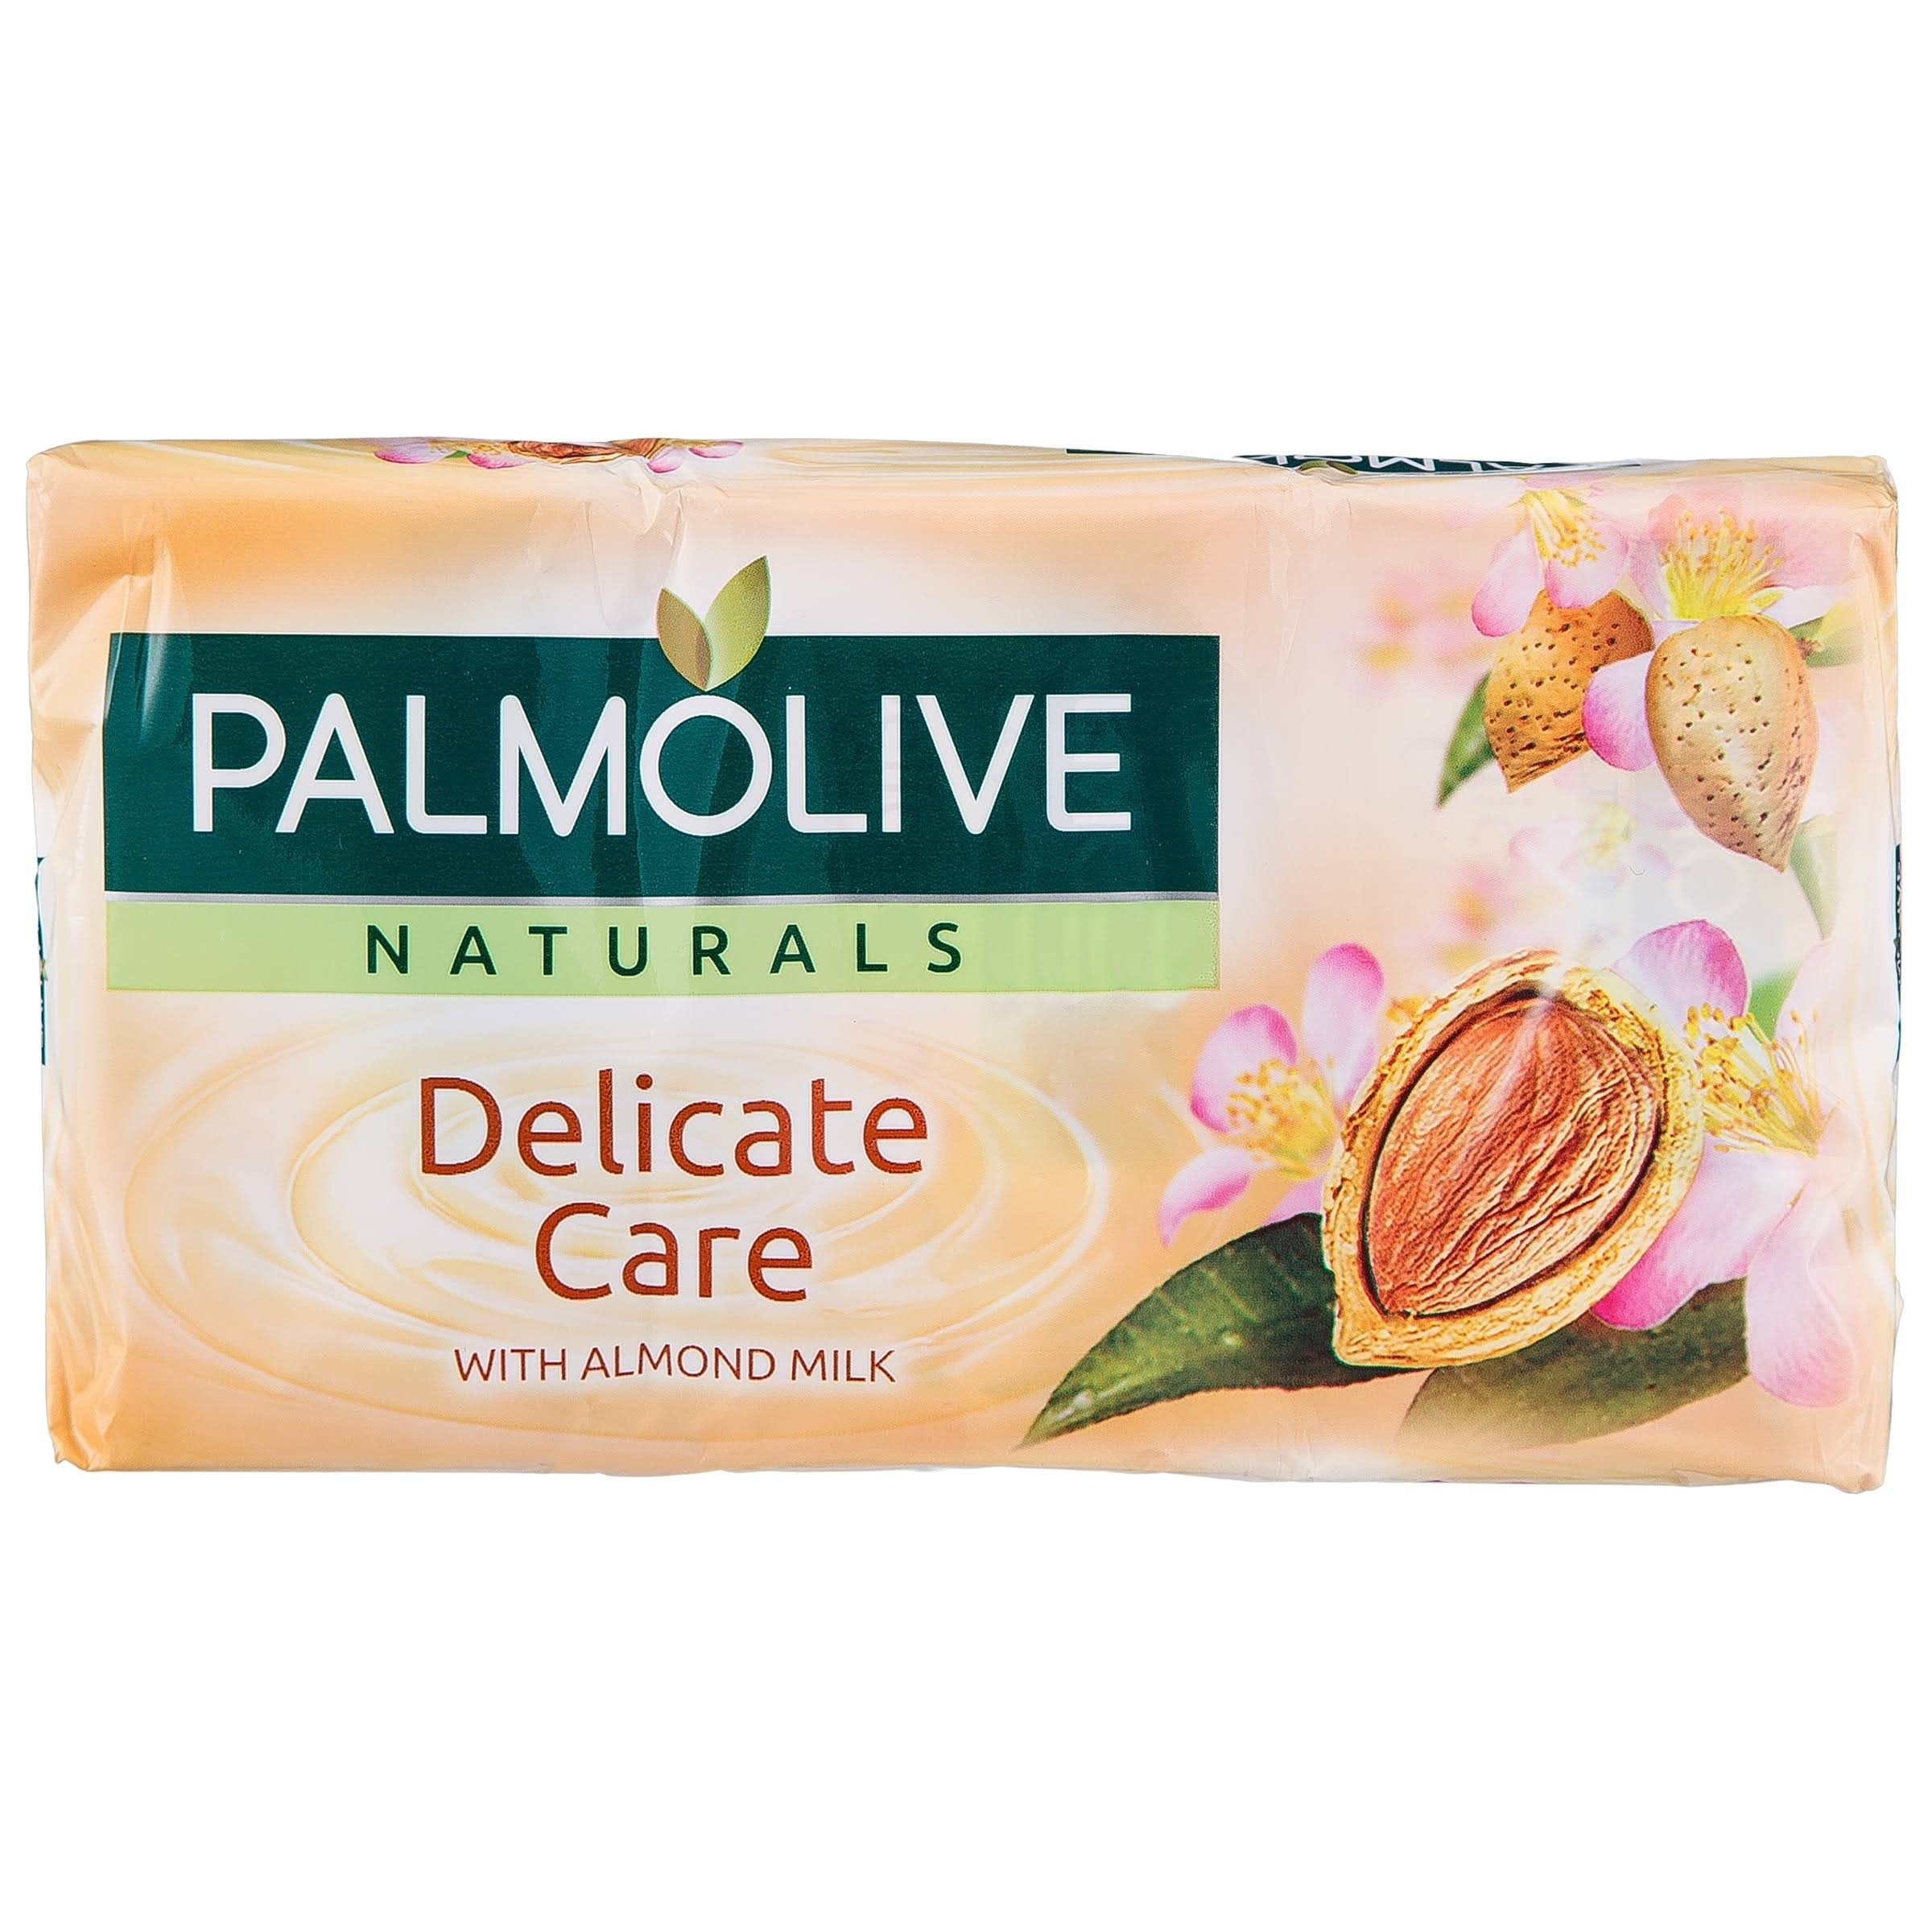 Palmolive Naturals Delicate Care Soap Bar - Almond Milk, 90g, 3ct